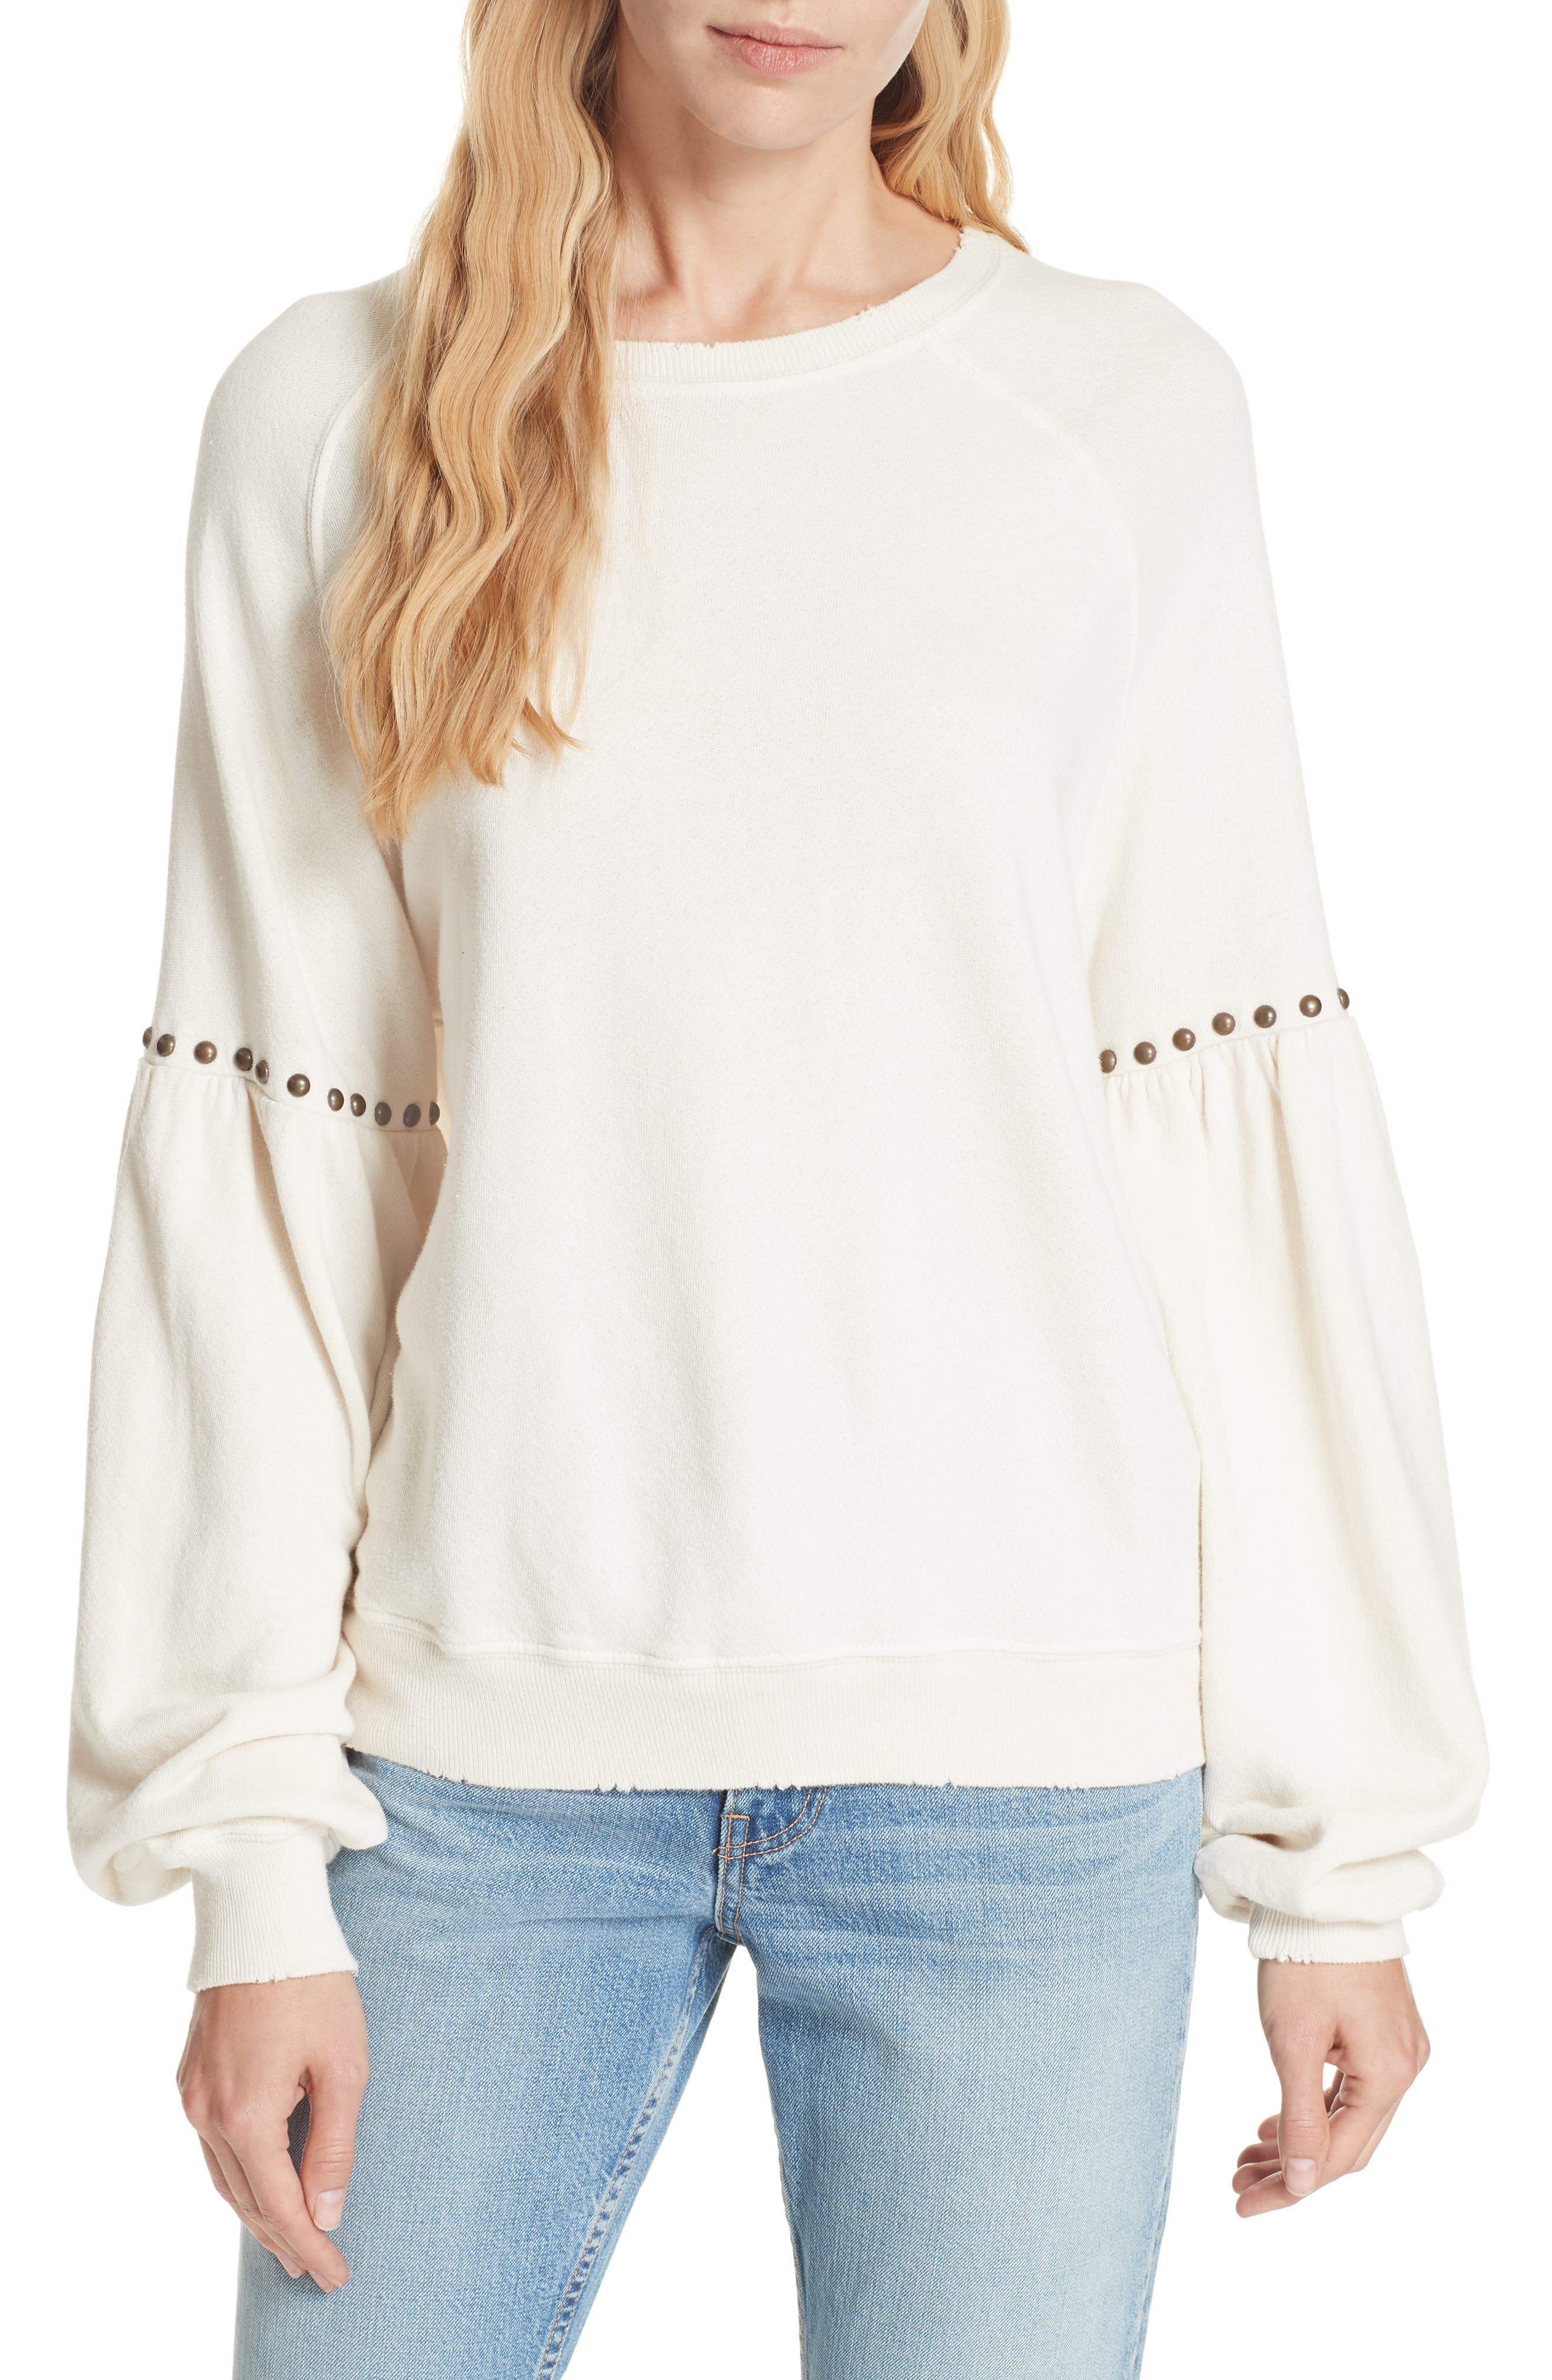 The Bishop Sleeve Studded Sweatshirt,                         Main,                         color, Washed White W/ Studs